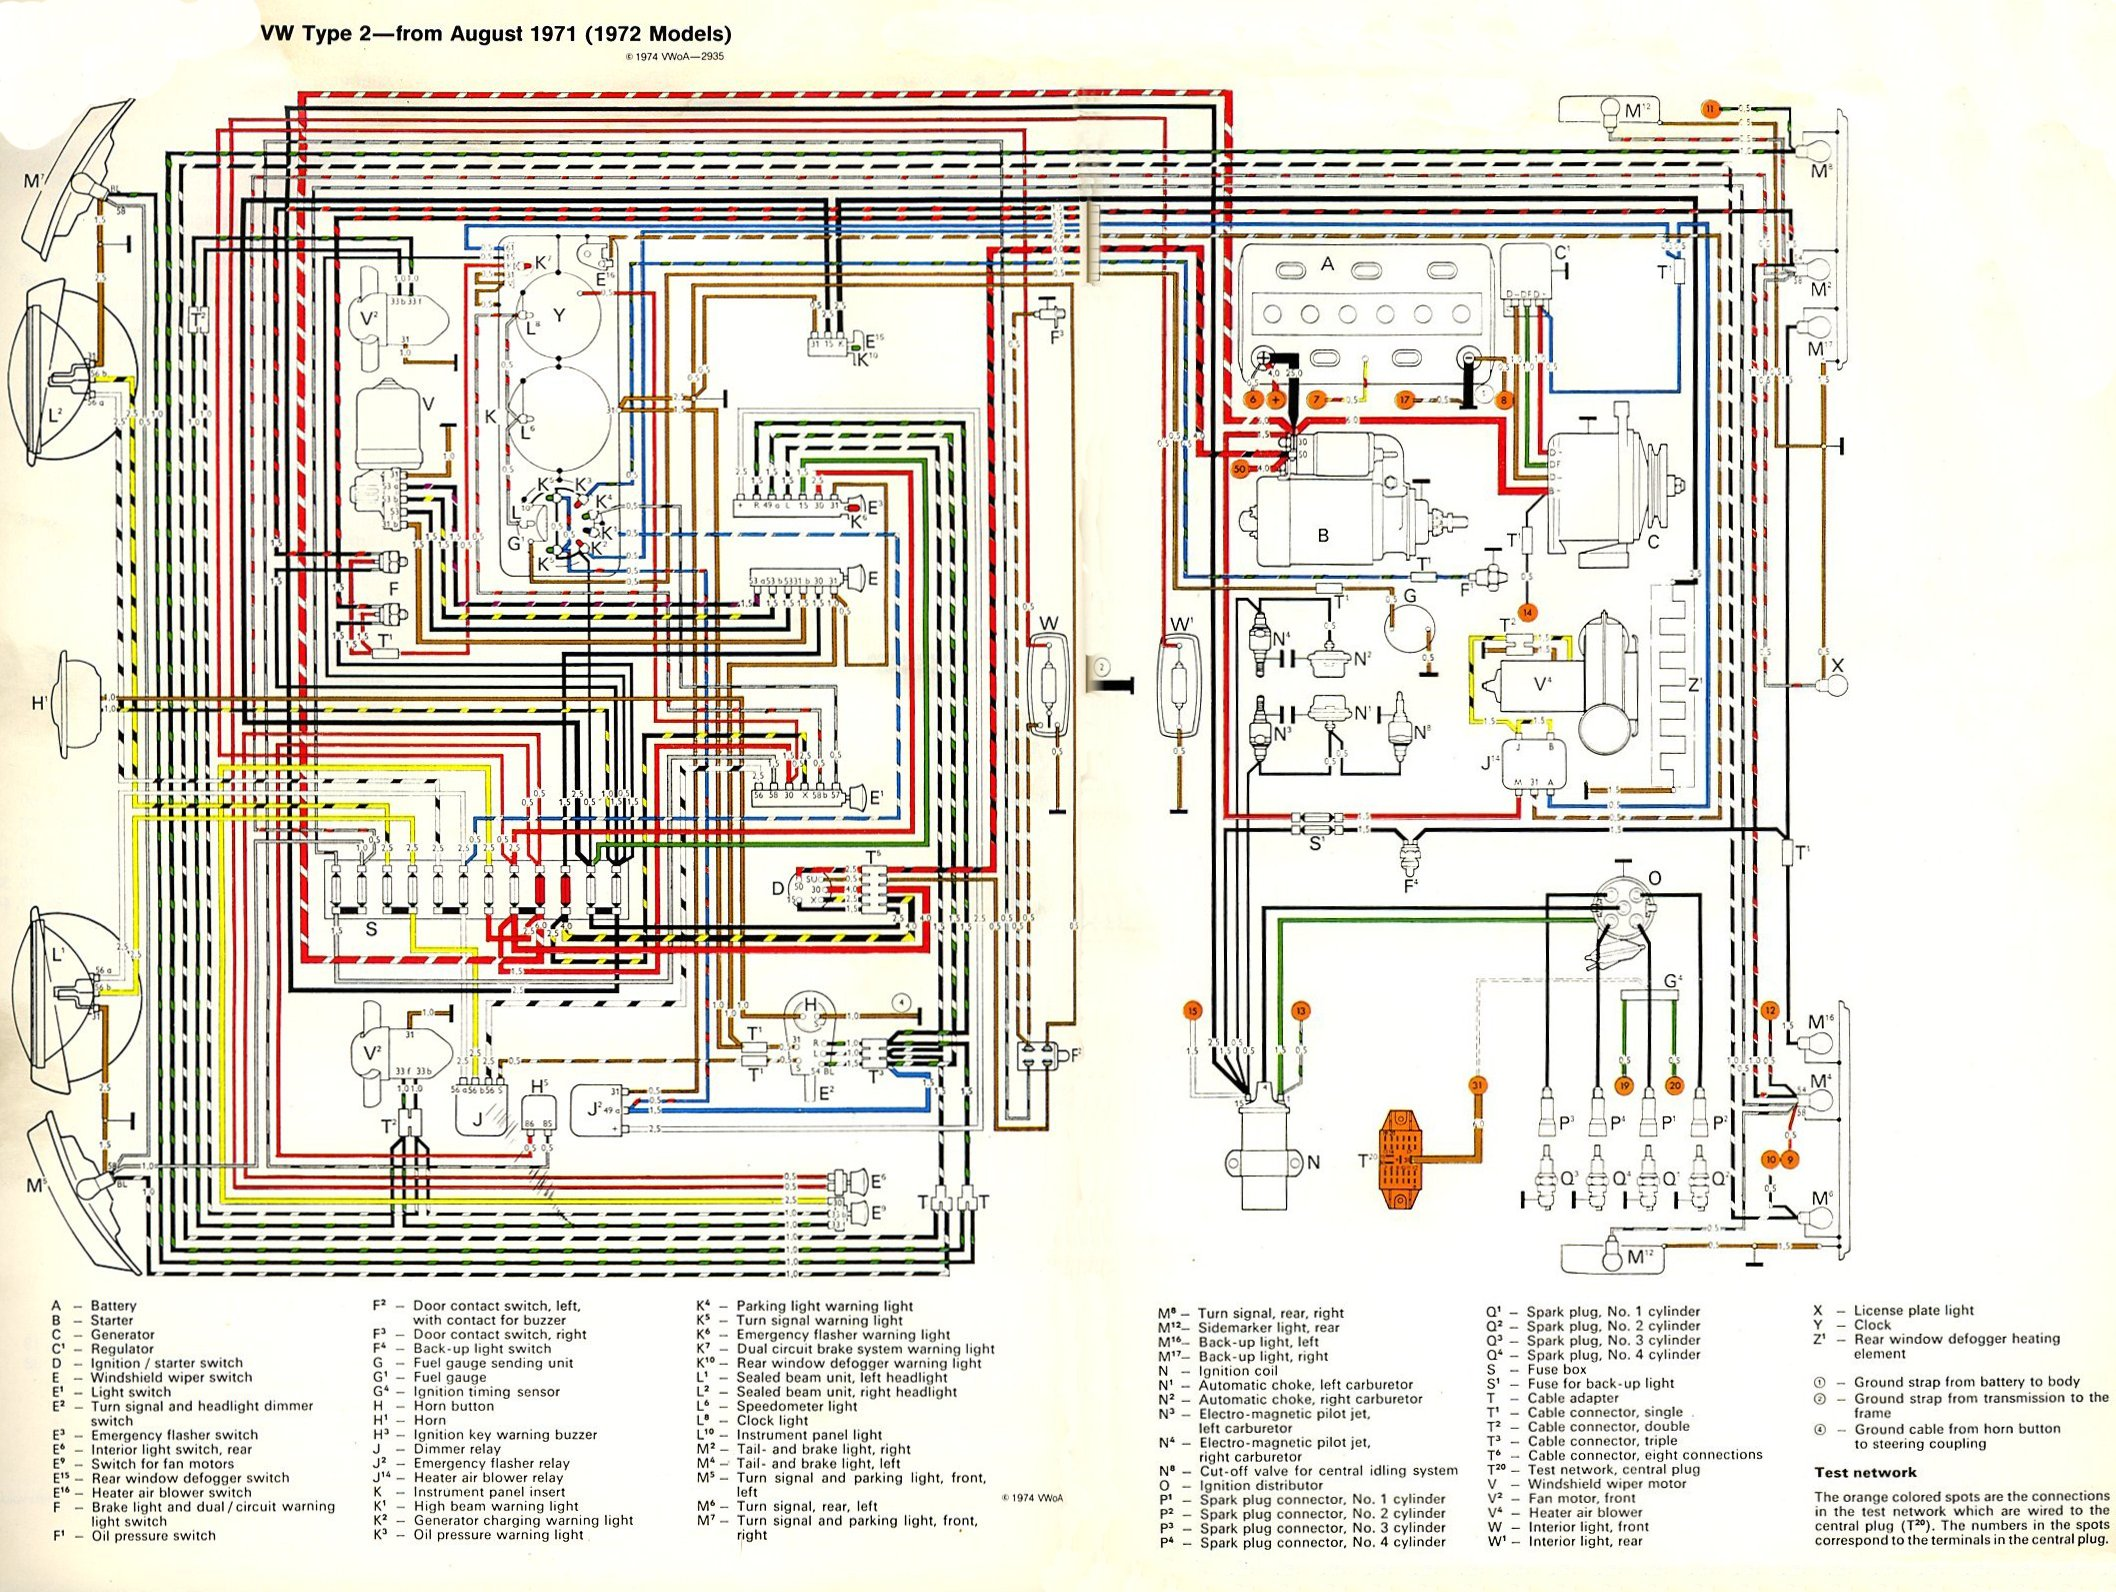 chevelle wiring schematic 1971 chevelle wiring diagram 1971 image wiring diagram 71 chevelle wiring diagram 71 auto wiring diagram